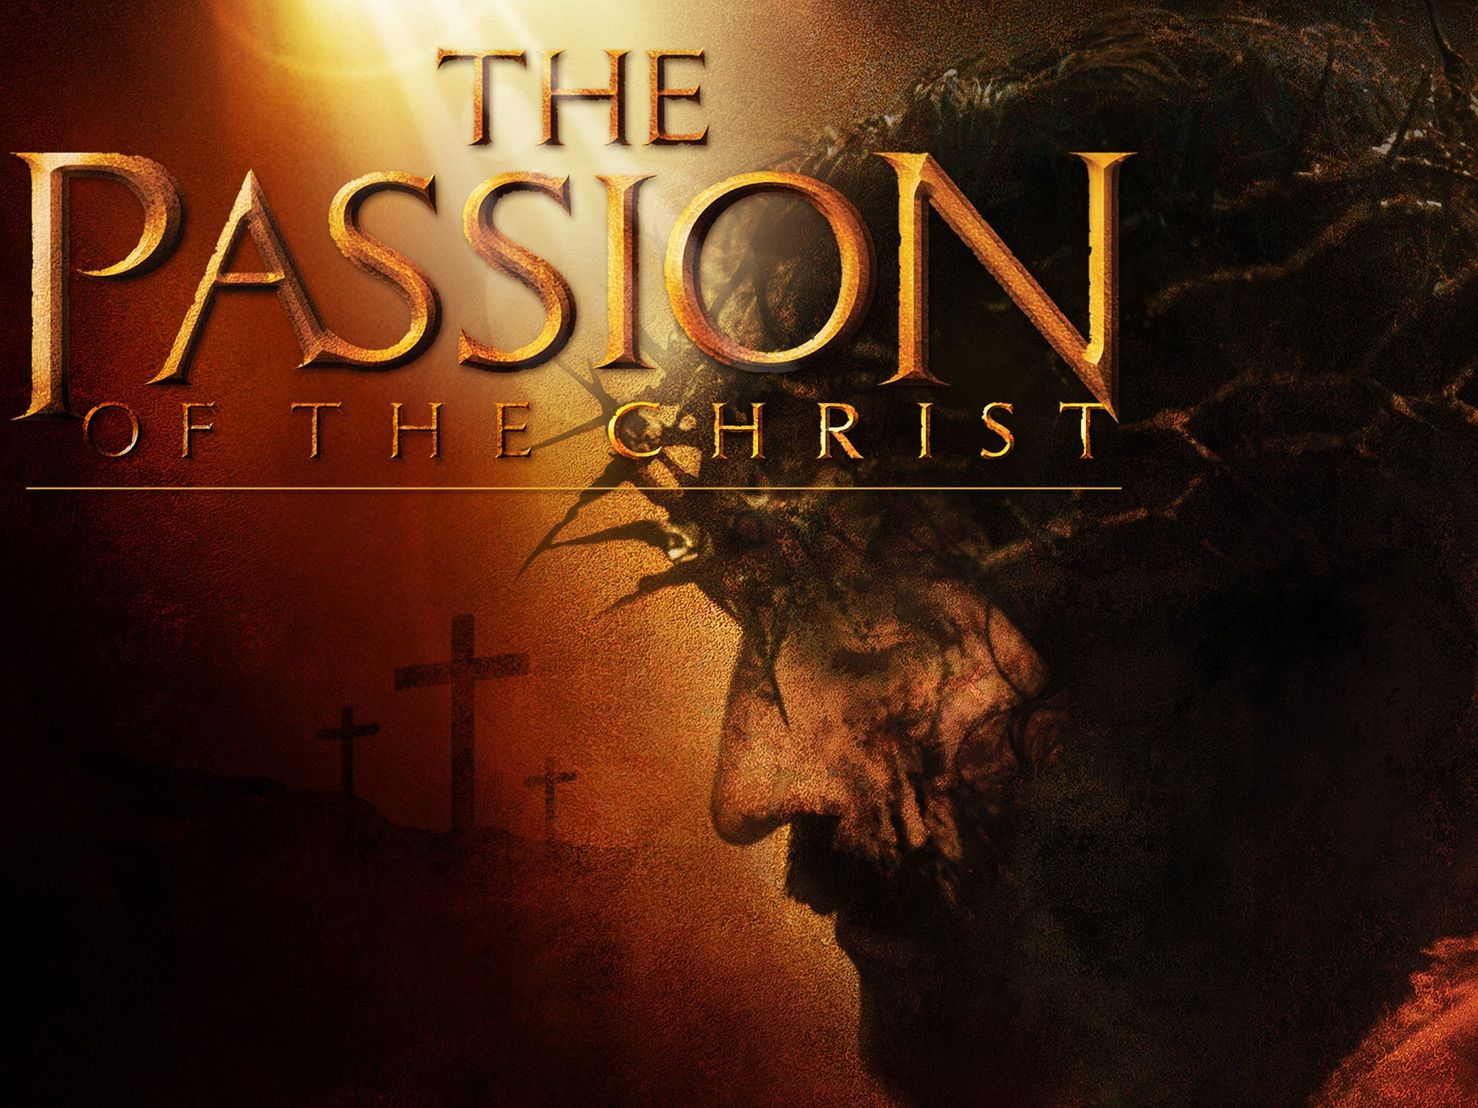 The Passion of Christ - Four full lessons (Arrest, Trial, Crucifixion and Holy Communion)